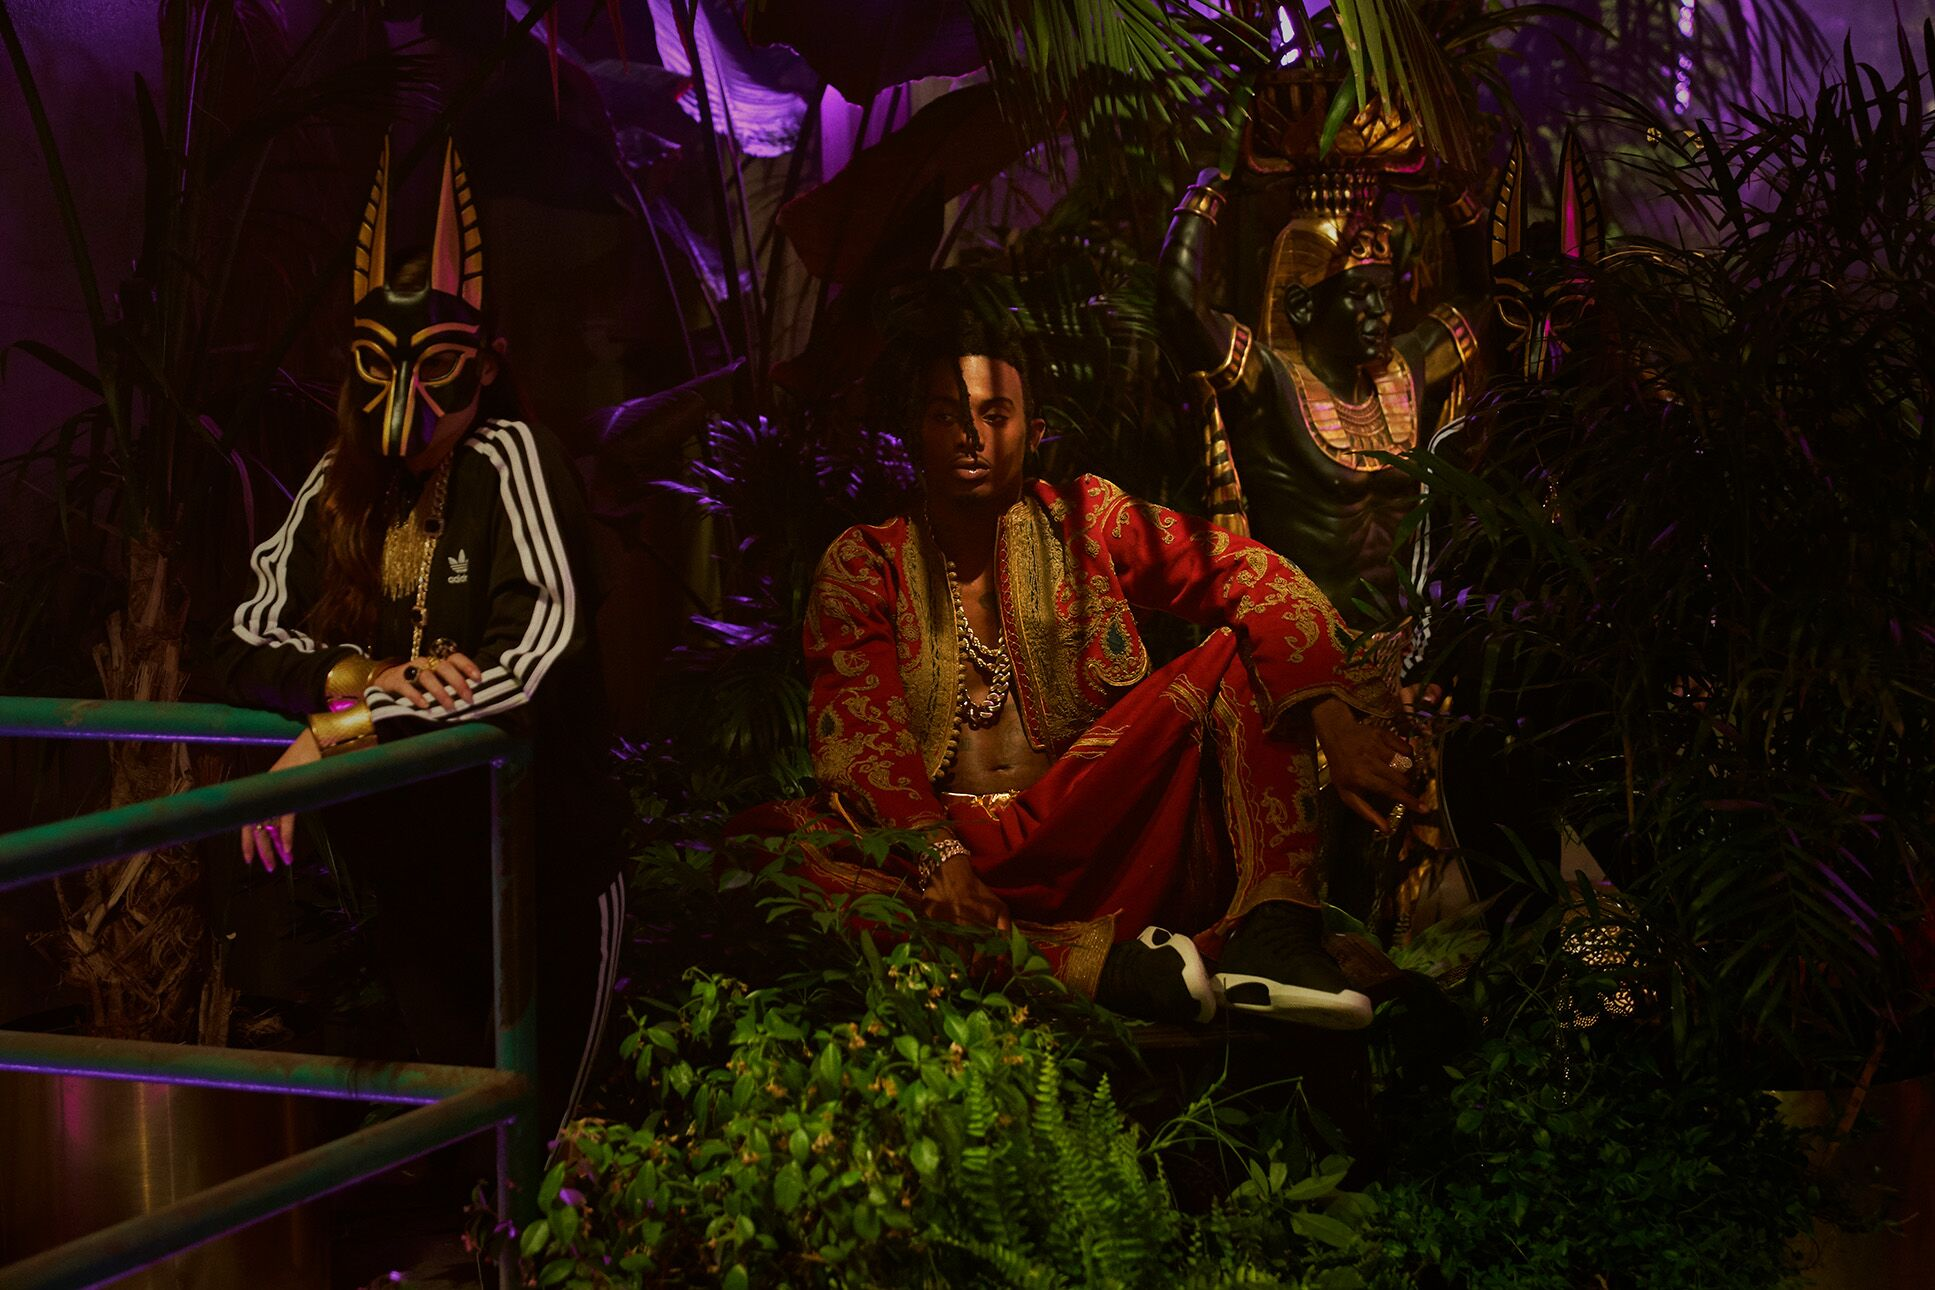 Playboi Carti, 21 Savage and Young Thug feature in adidas Original Is Never Finished film